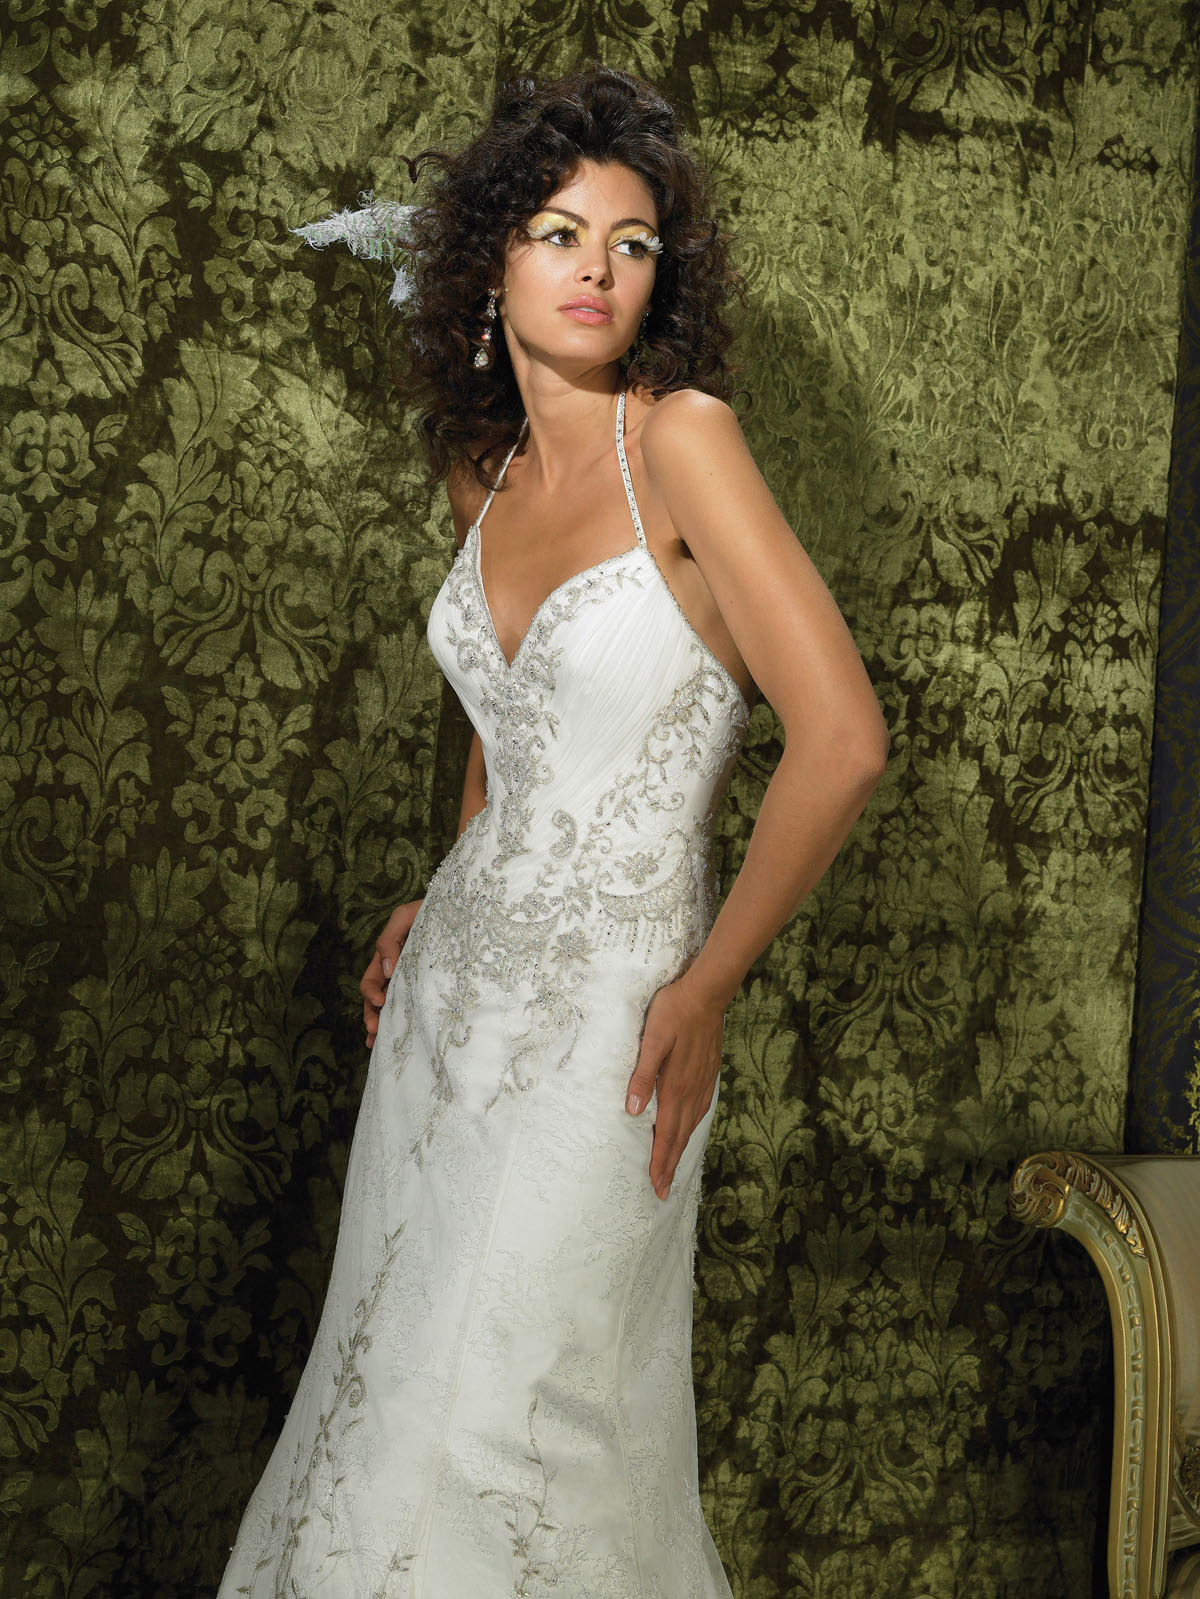 What's your dream wedding dress?